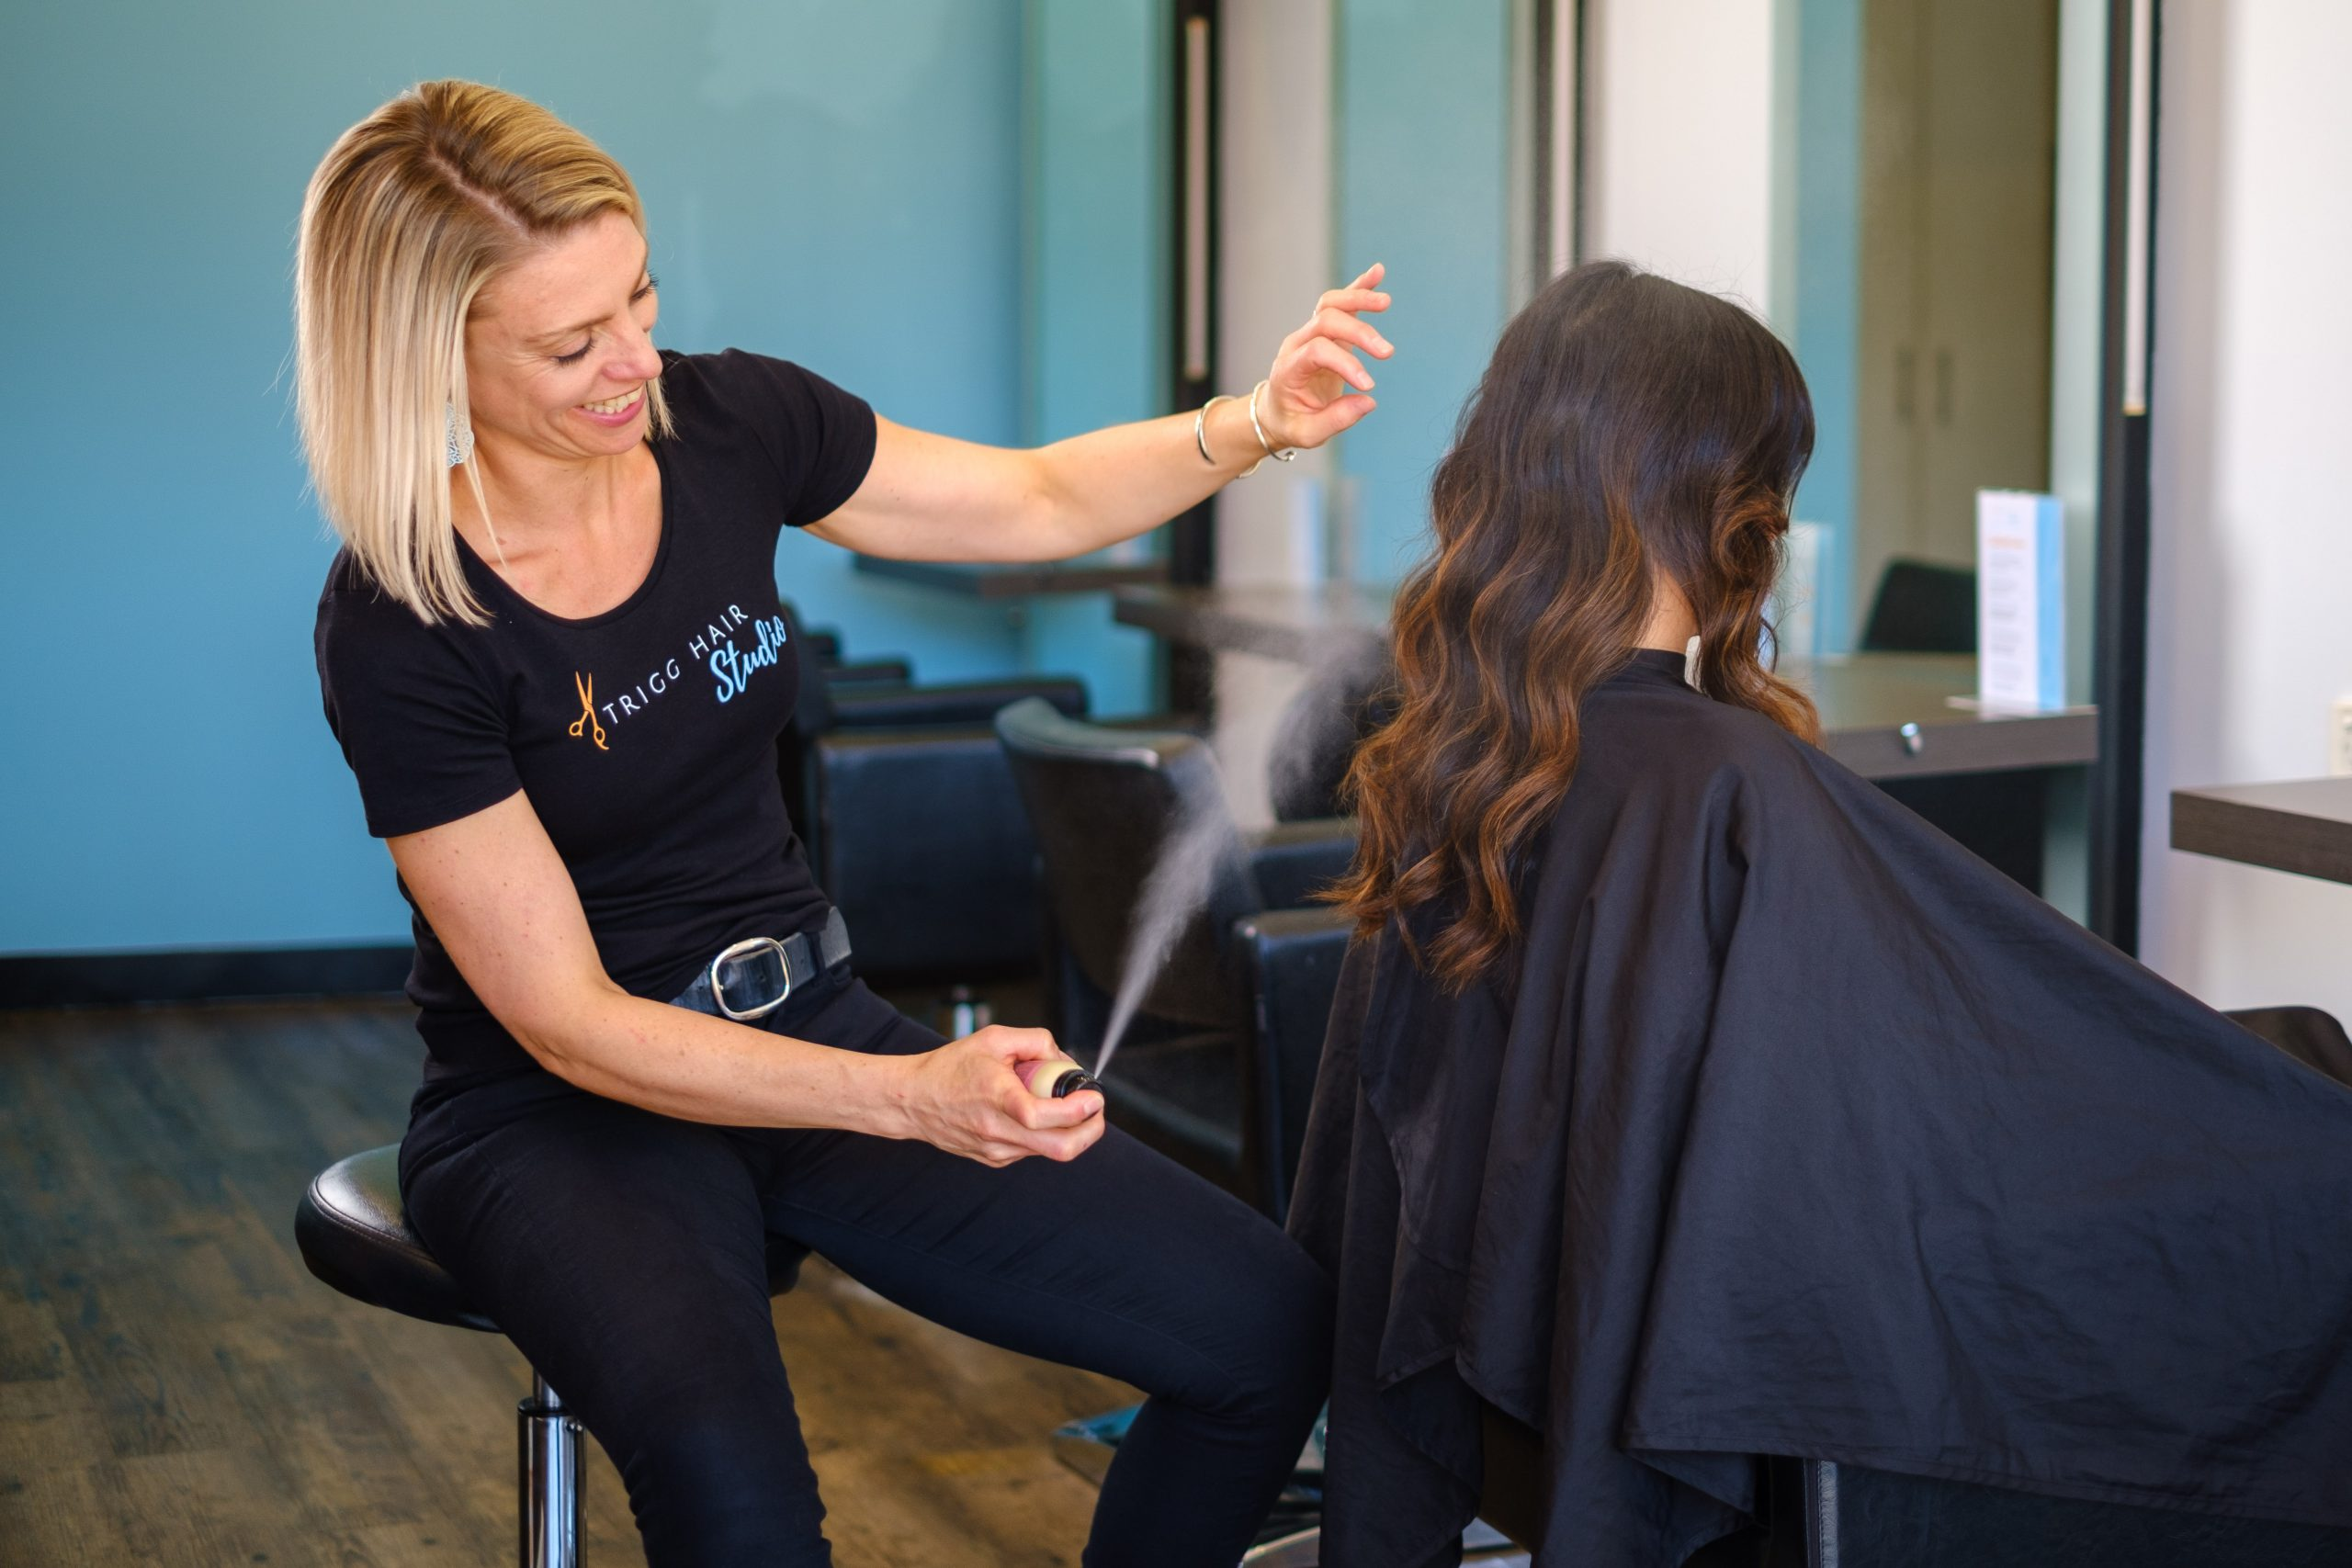 Trigg Hair Studio | Scarborough | Trigg | DoublevIew | North Beach | Karinyup | Duncraig | Carine | City Beach | low toxin sustainable